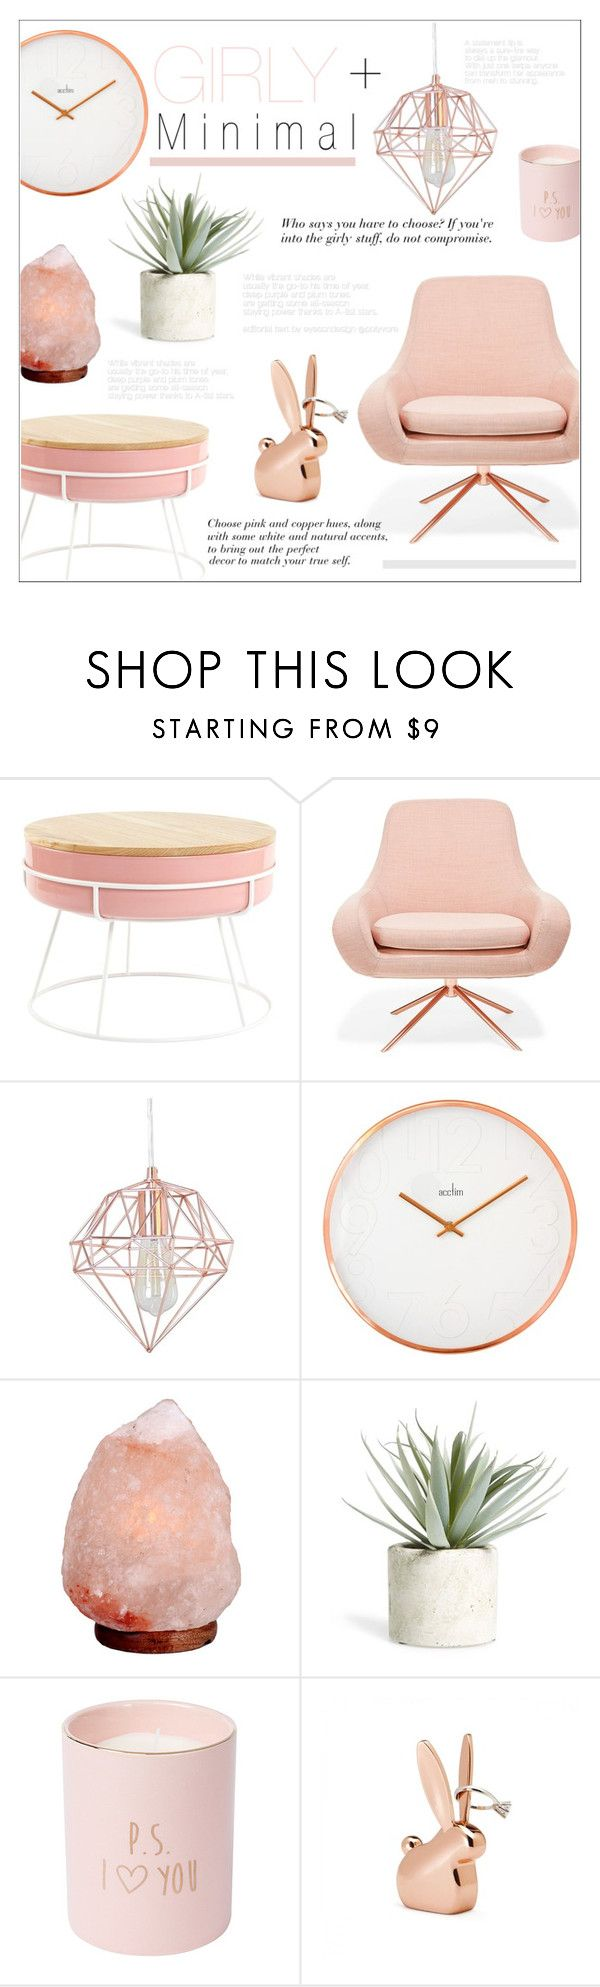 Girly Minimal By Alexandrazeres On Polyvore Featuring Interior Interiors Design